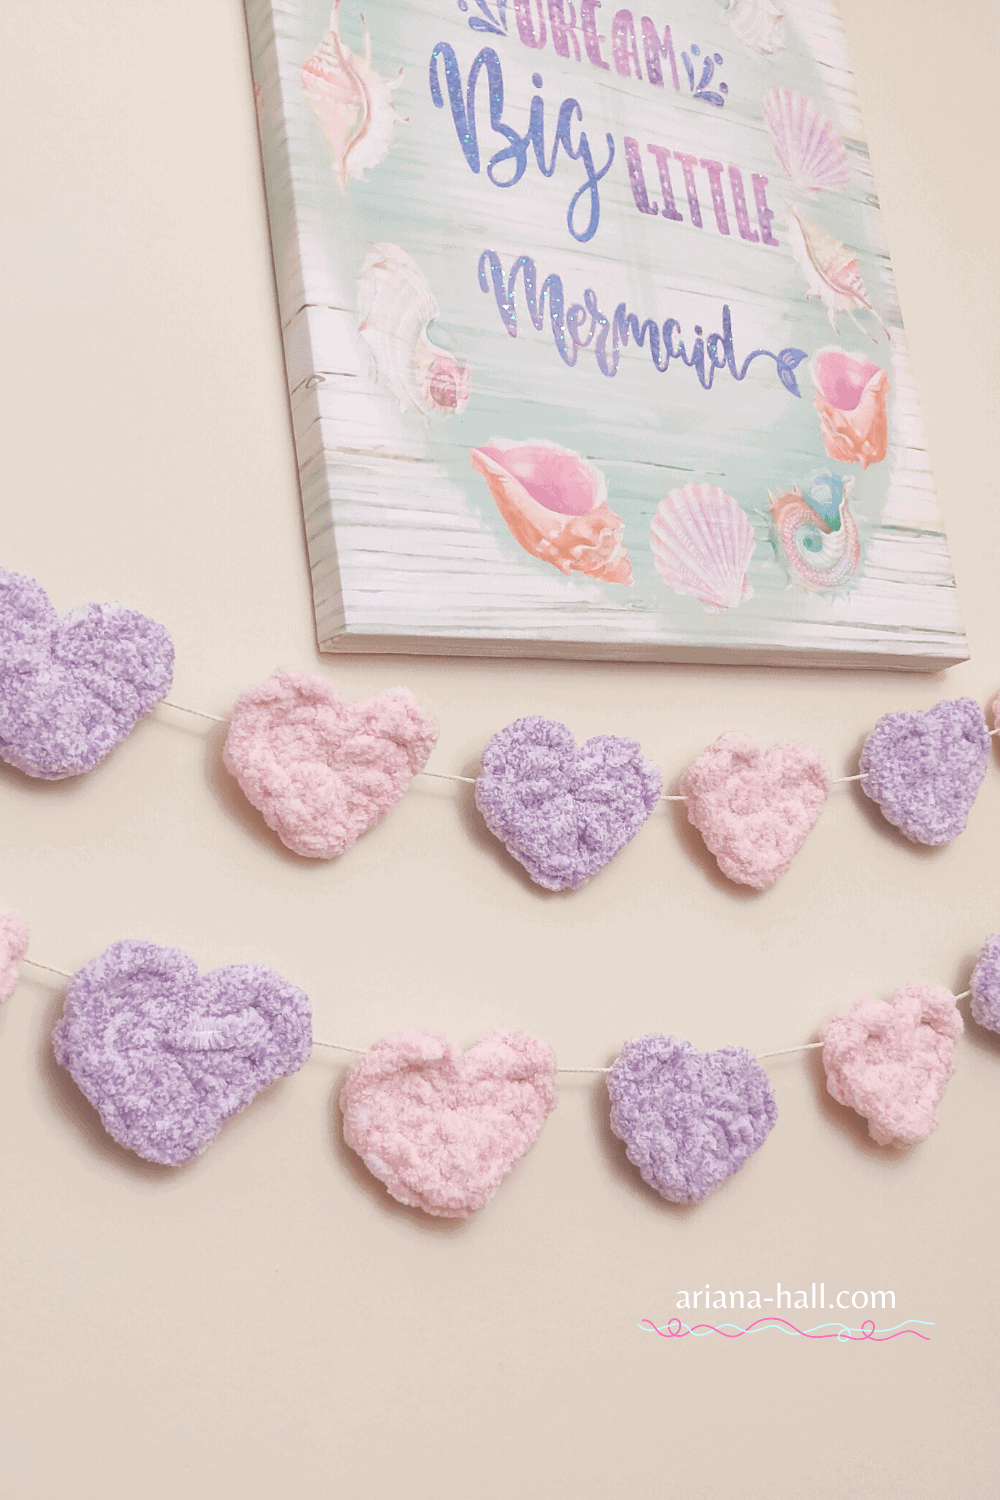 Pink and purple yarn heart garland hung on the wall.